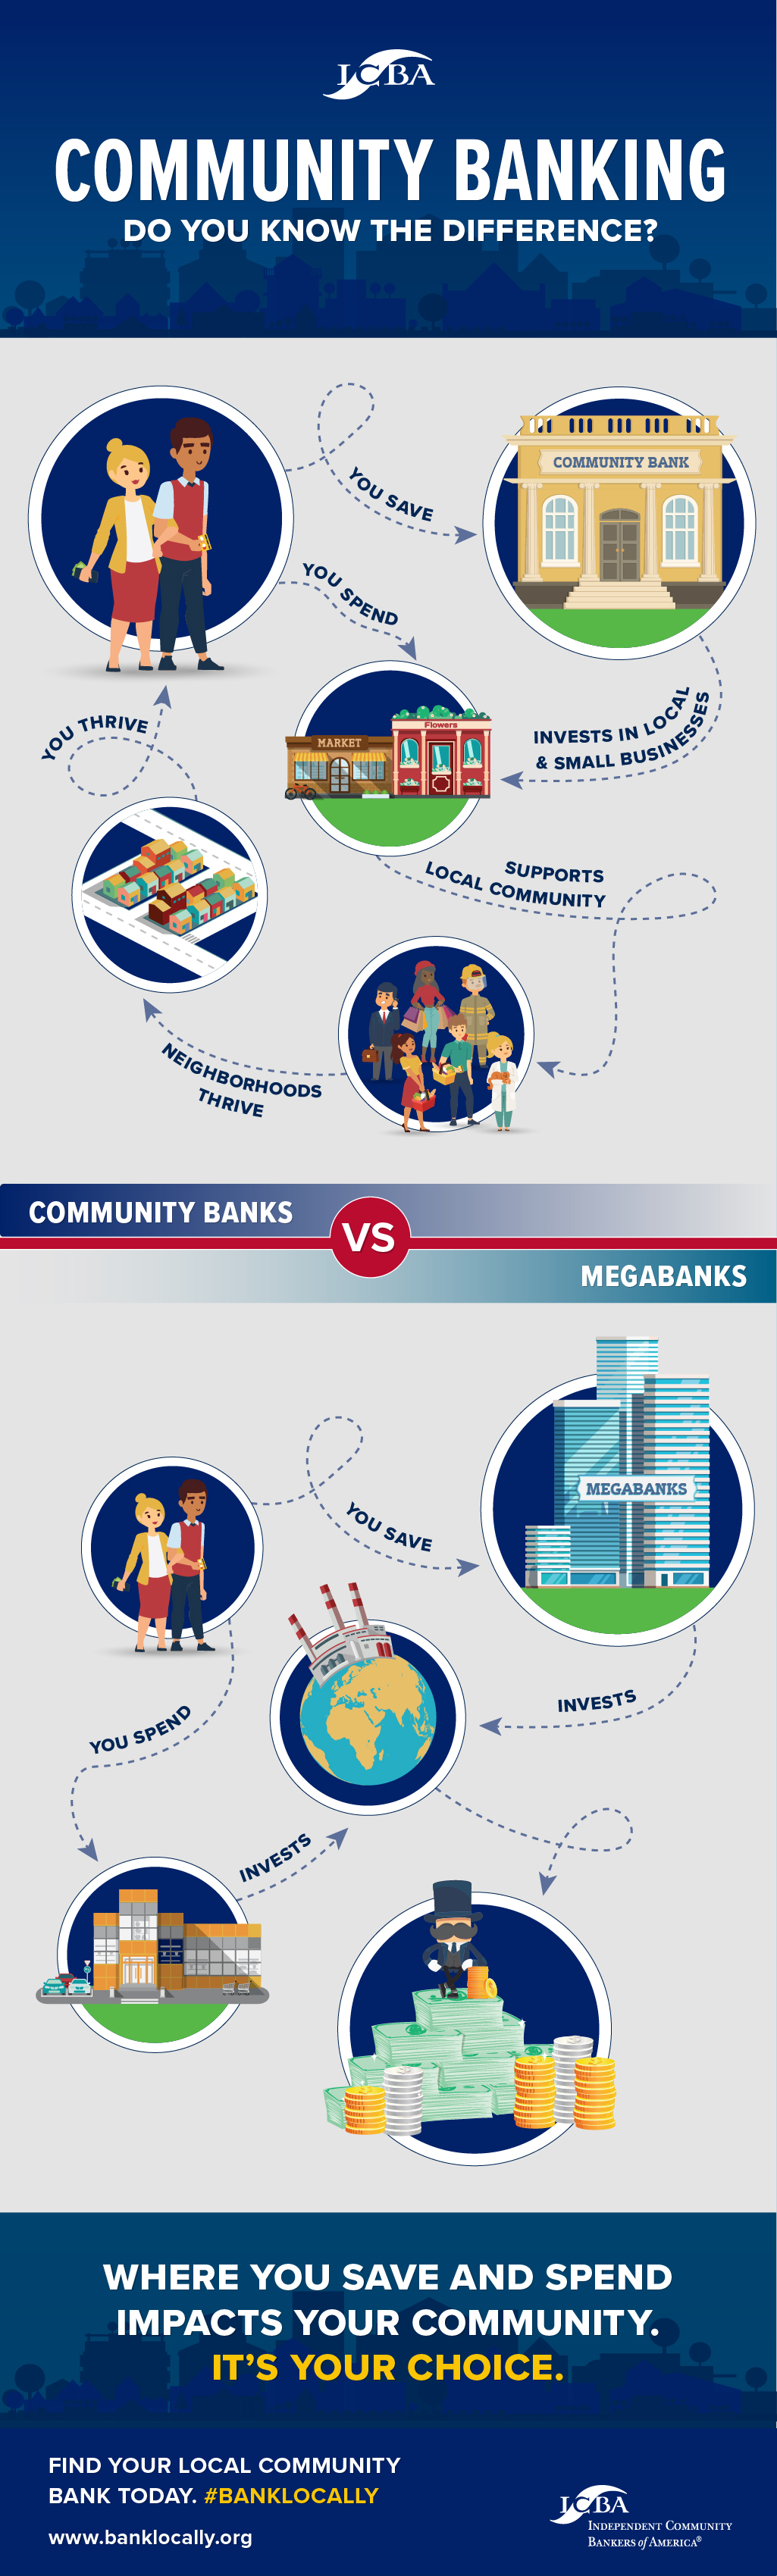 Community banks vs megabanks